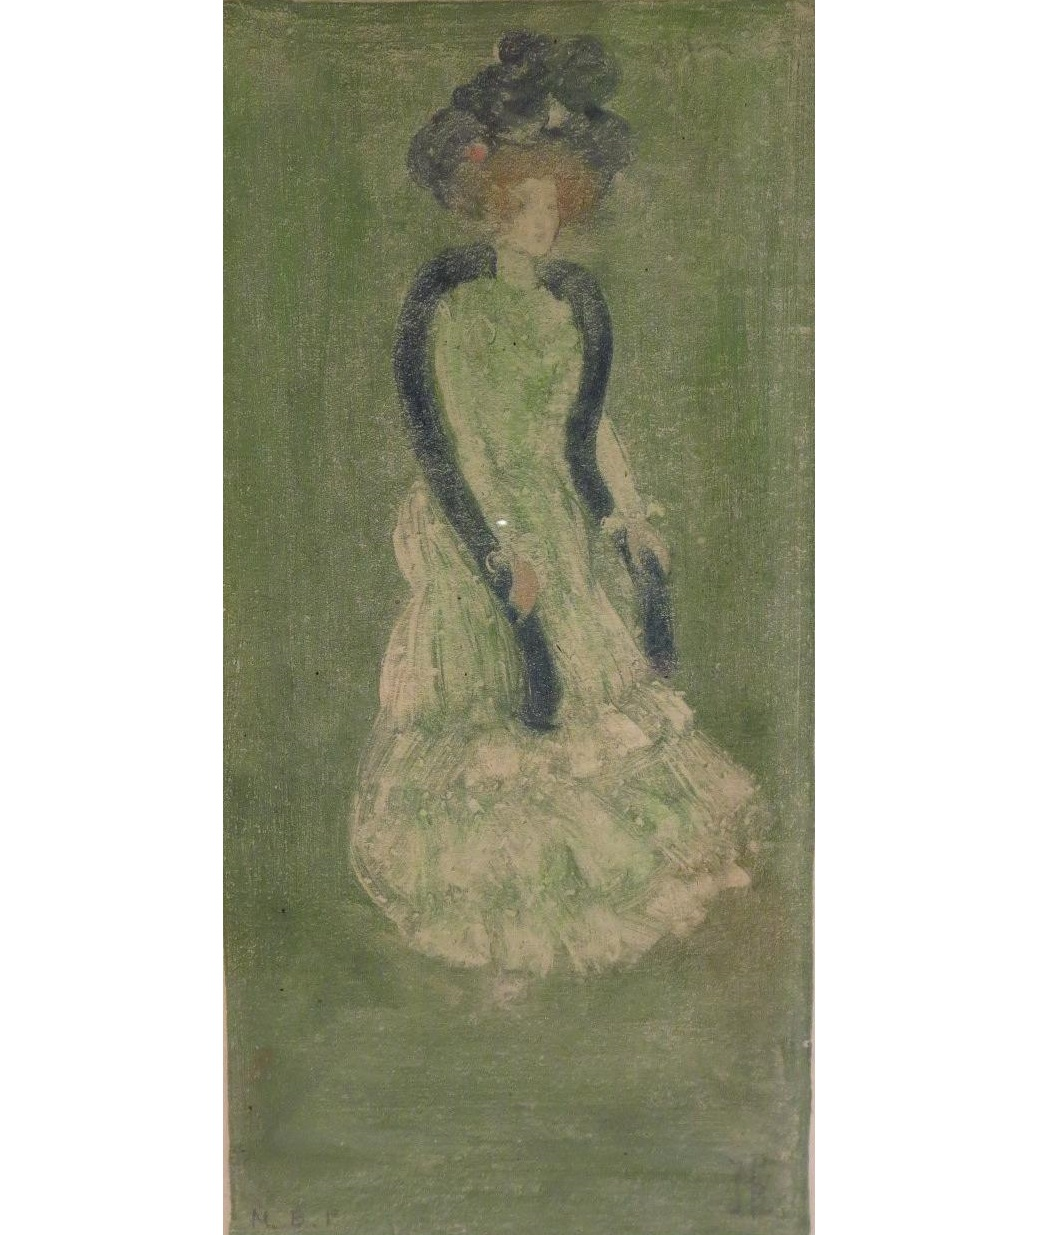 Maurice Prendergast, Am., 1858-1924, Lady In Green Dress, C. 1900, Monotype. Sold For $13,750.